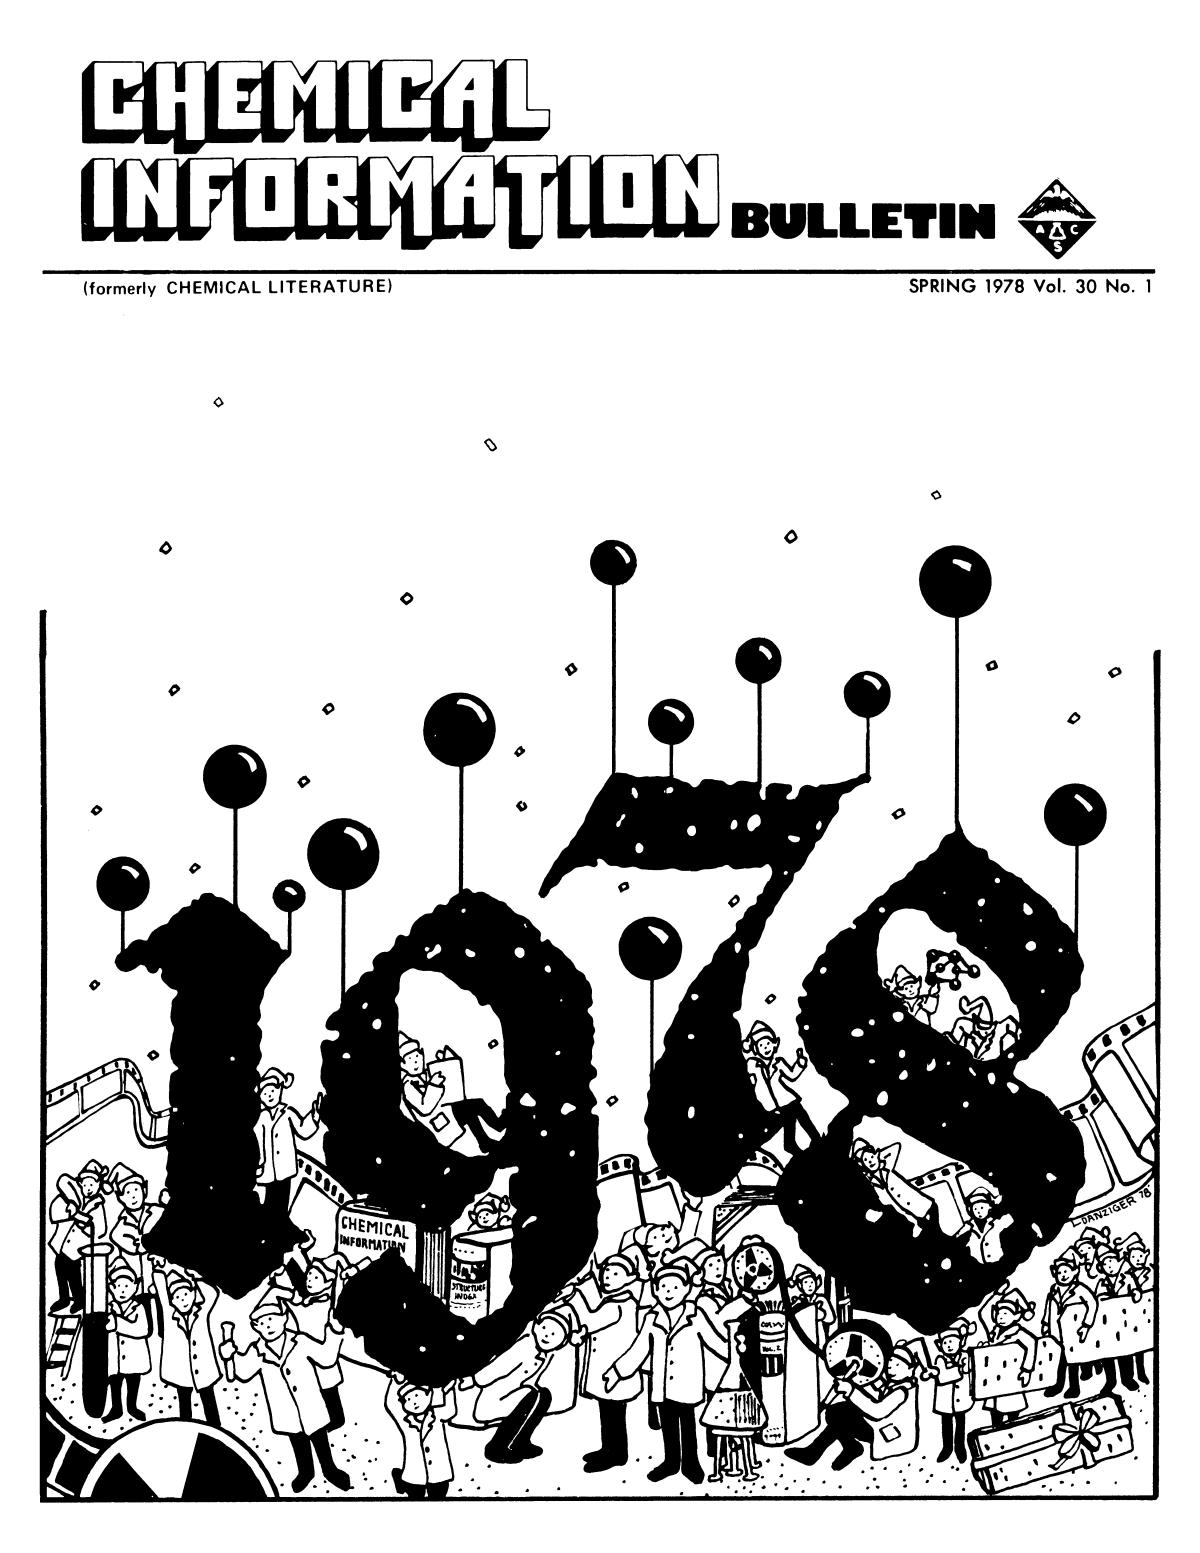 Chemical Information Bulletin, Volume 30, Number 1, Spring 1978                                                                                                      Front Cover